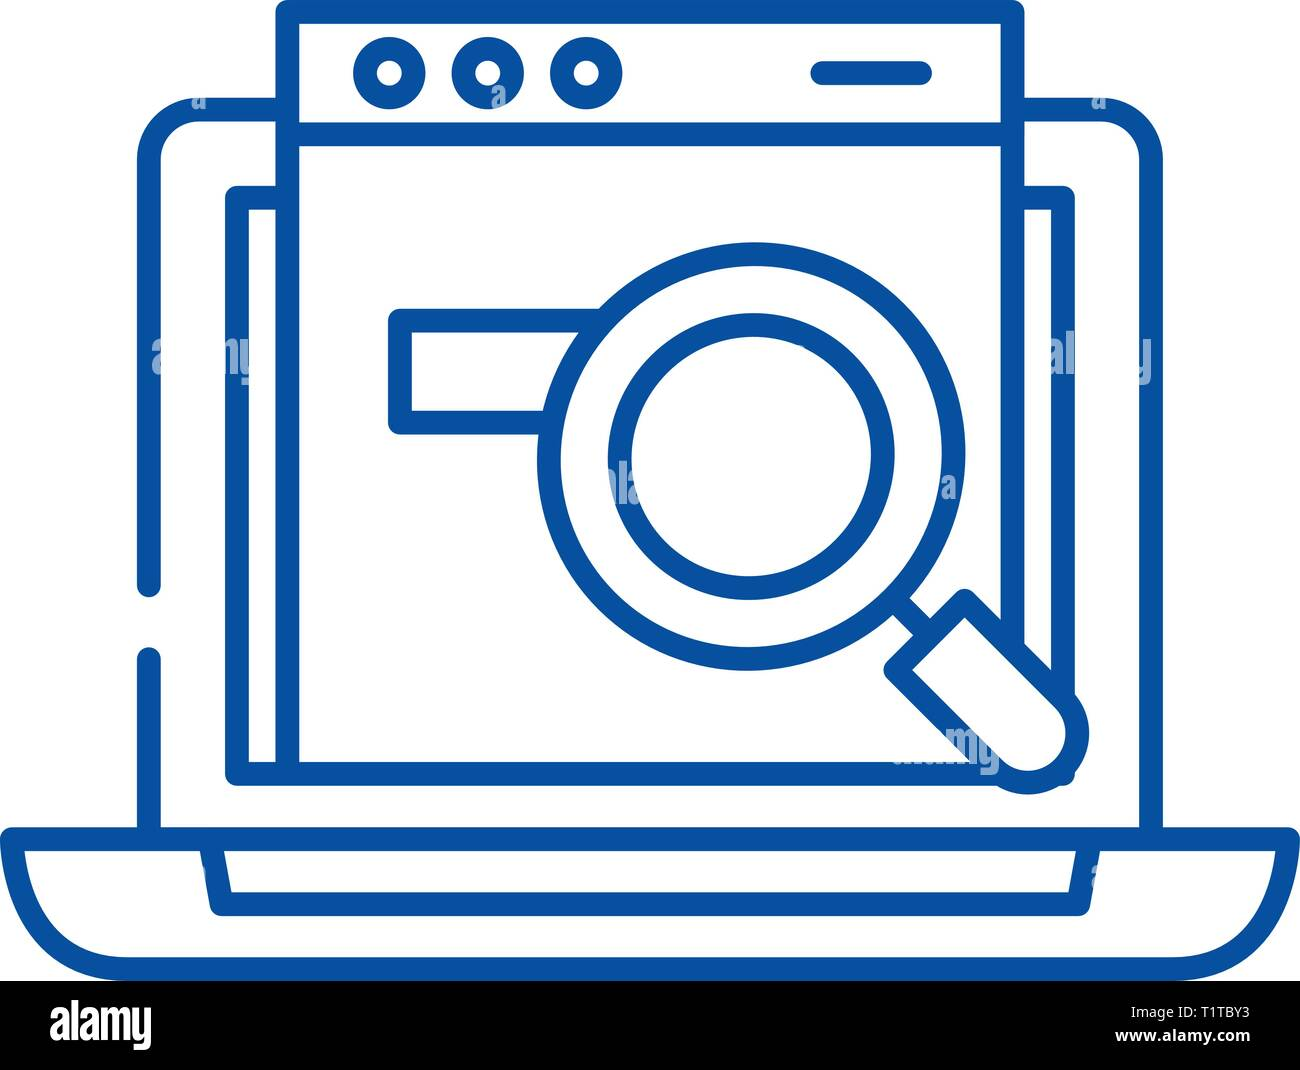 Search site line icon concept. Search site flat  vector symbol, sign, outline illustration. - Stock Vector